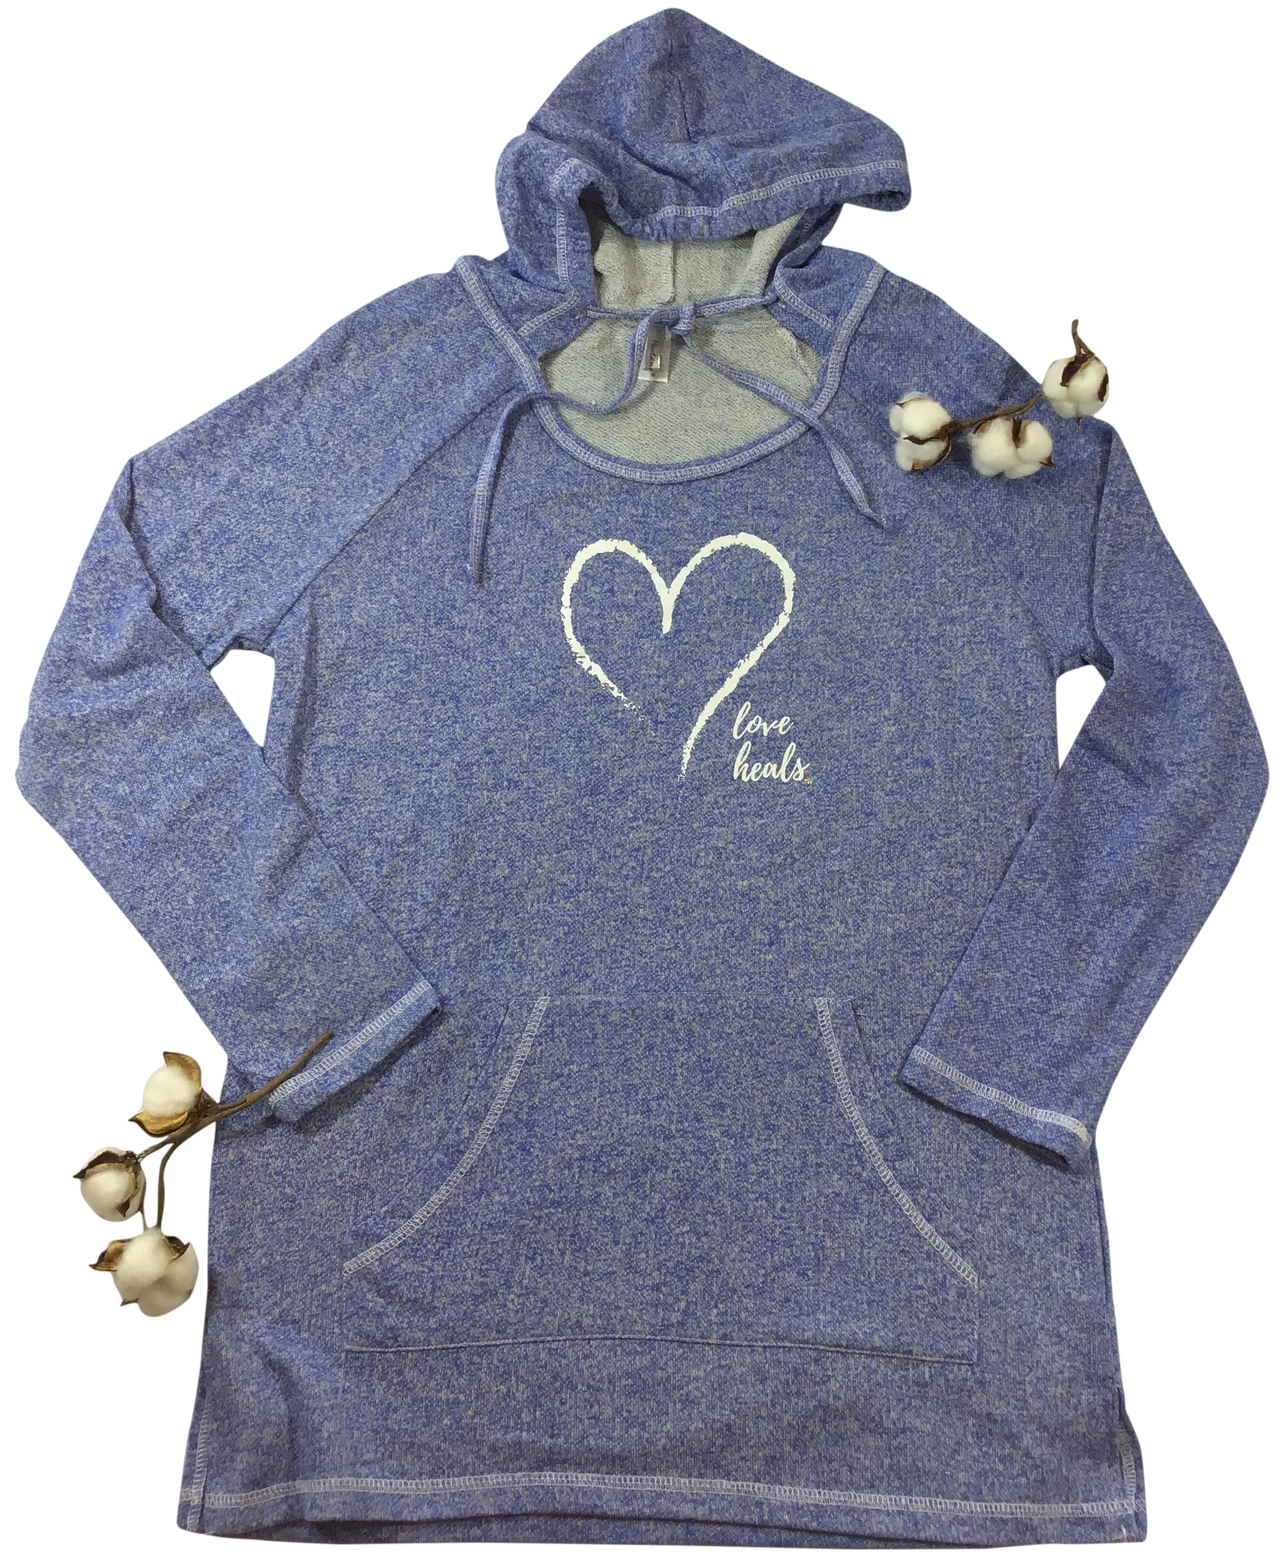 Montana's Heart Love Heals Ladies French Terry Fabric, Tunic Hoodie Long Sleeve Pullover